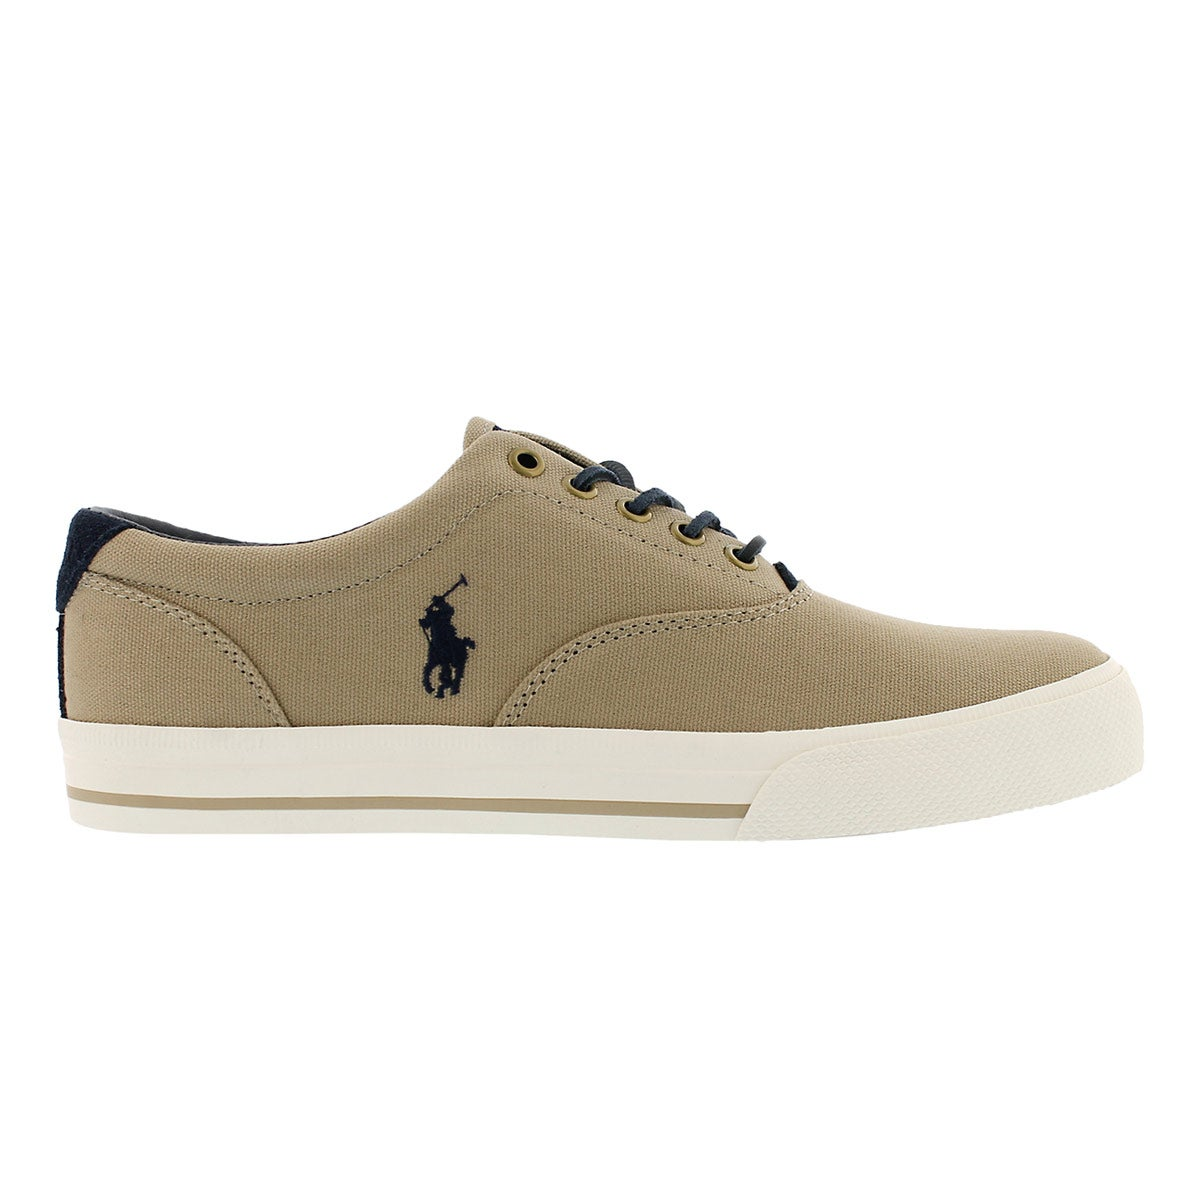 Mns Vaughn boating khaki canvas sneaker